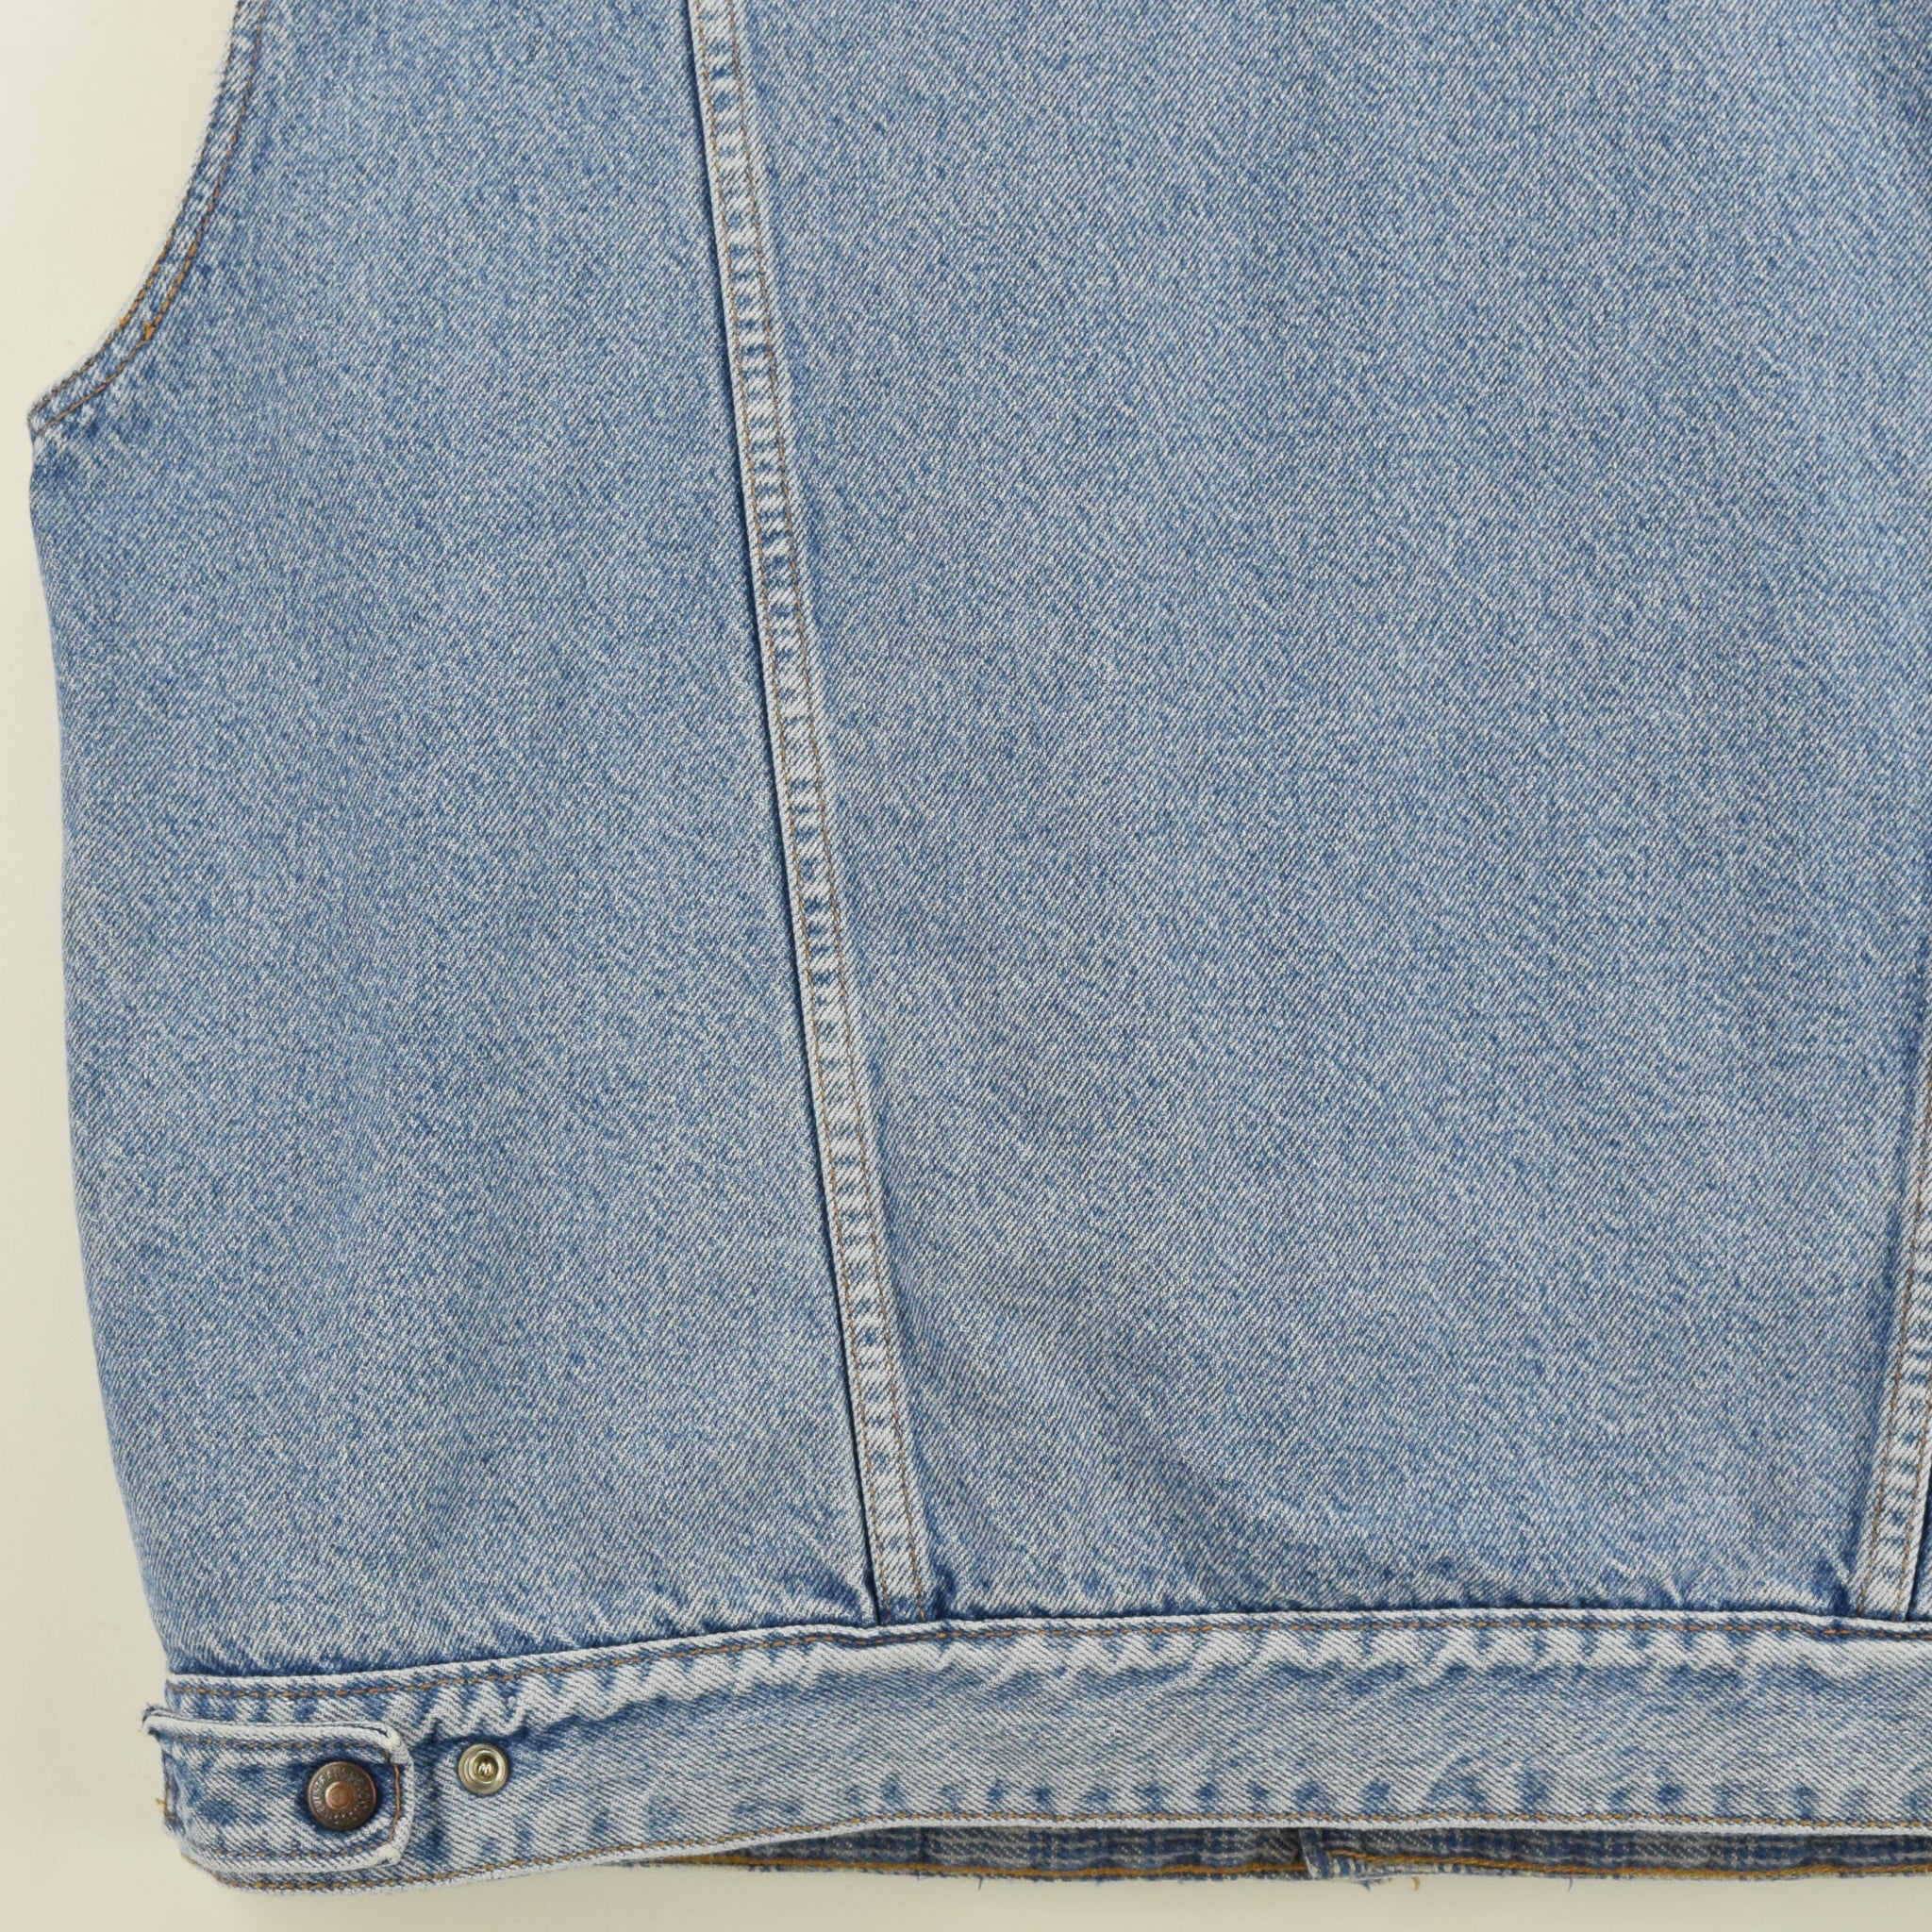 Vintage Levi Reversible Blue Denim Gilet Cord Collar Waistcoat Made in USA XL back hem